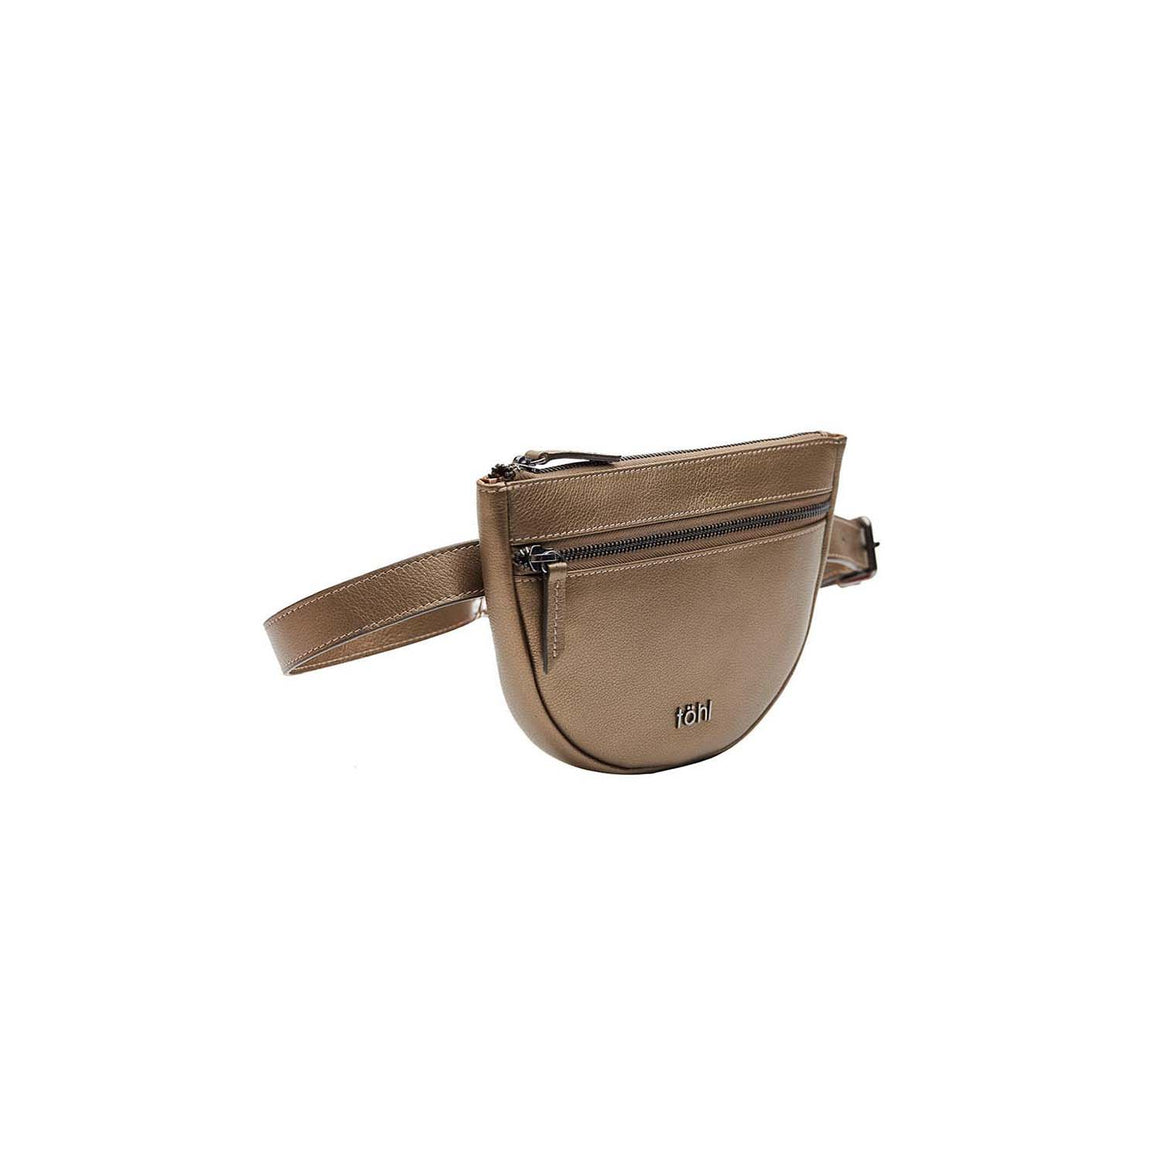 WP 0001 - TOHL RISELY WOMEN'S WAIST POUCH - METALLIC COPPER